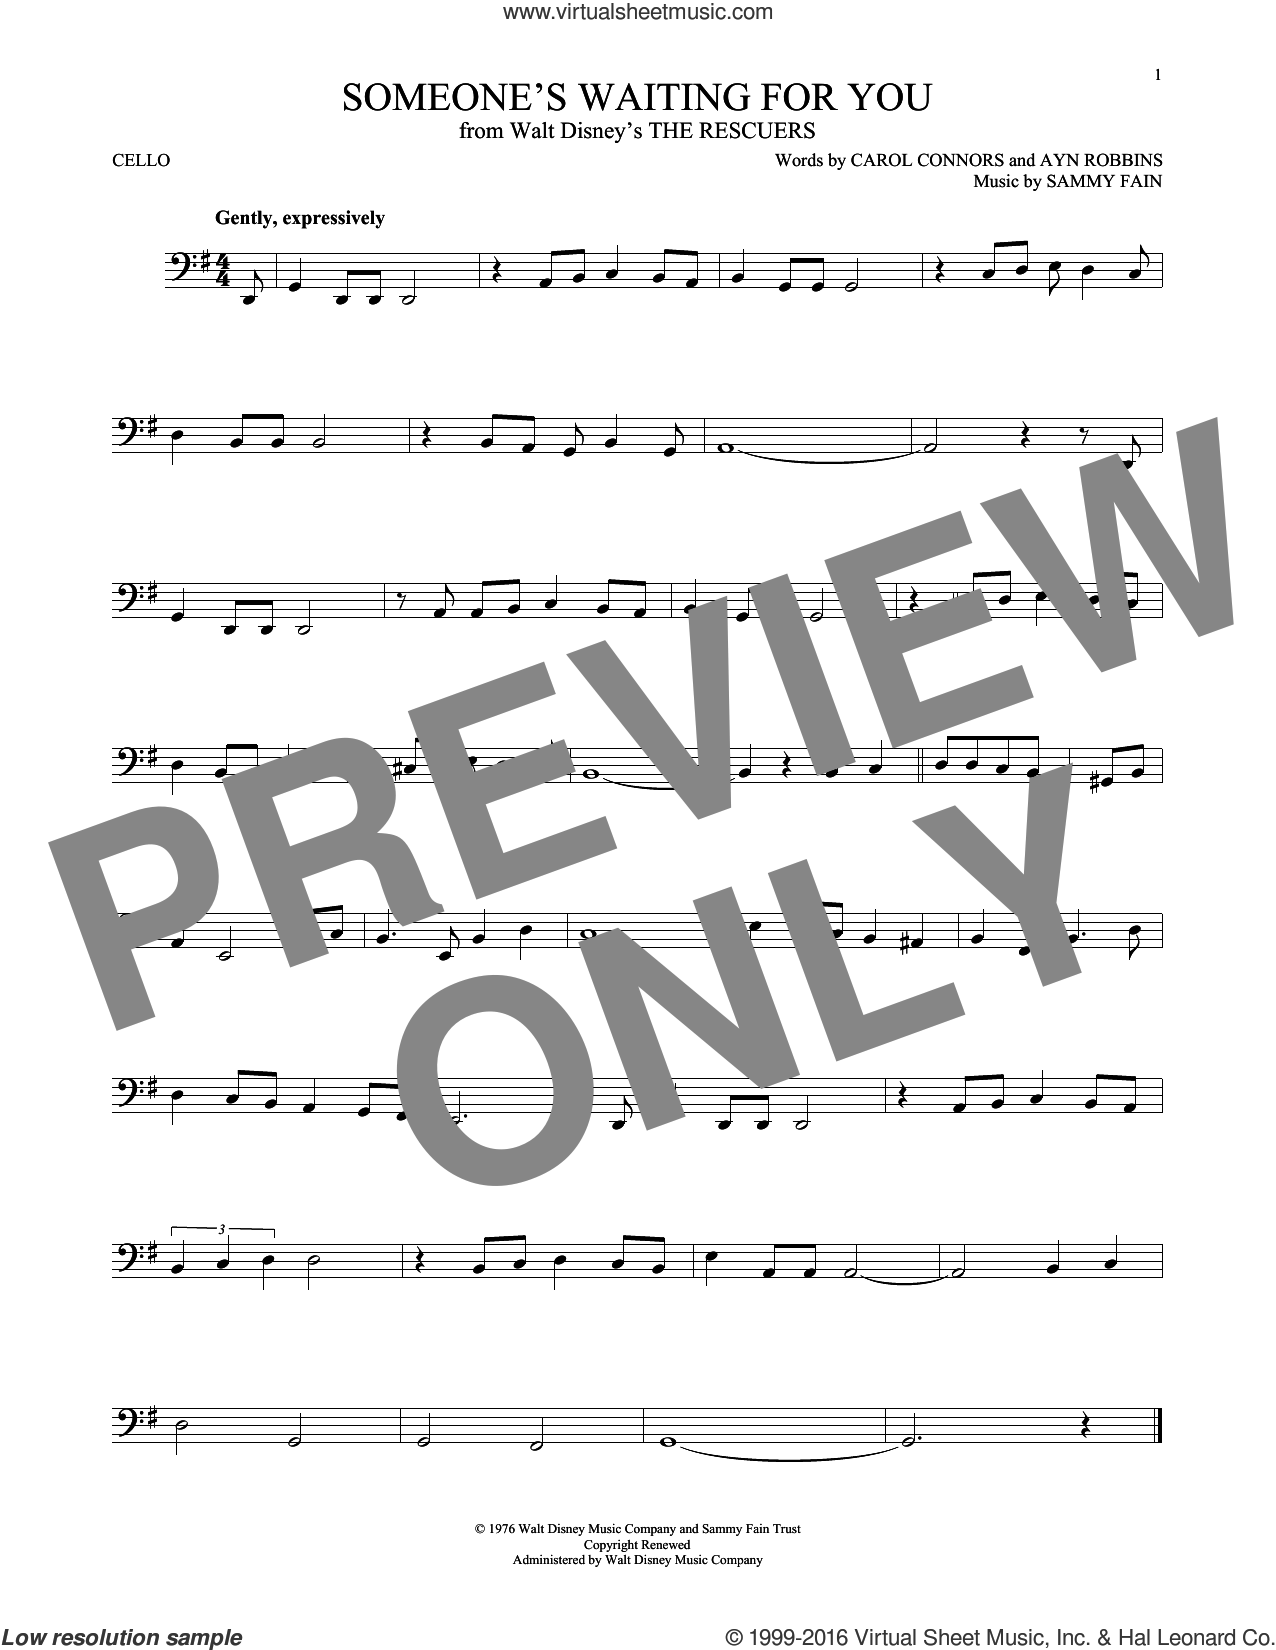 Someone's Waiting For You sheet music for cello solo by Sammy Fain, Ayn Robbins and Carol Connors, intermediate skill level